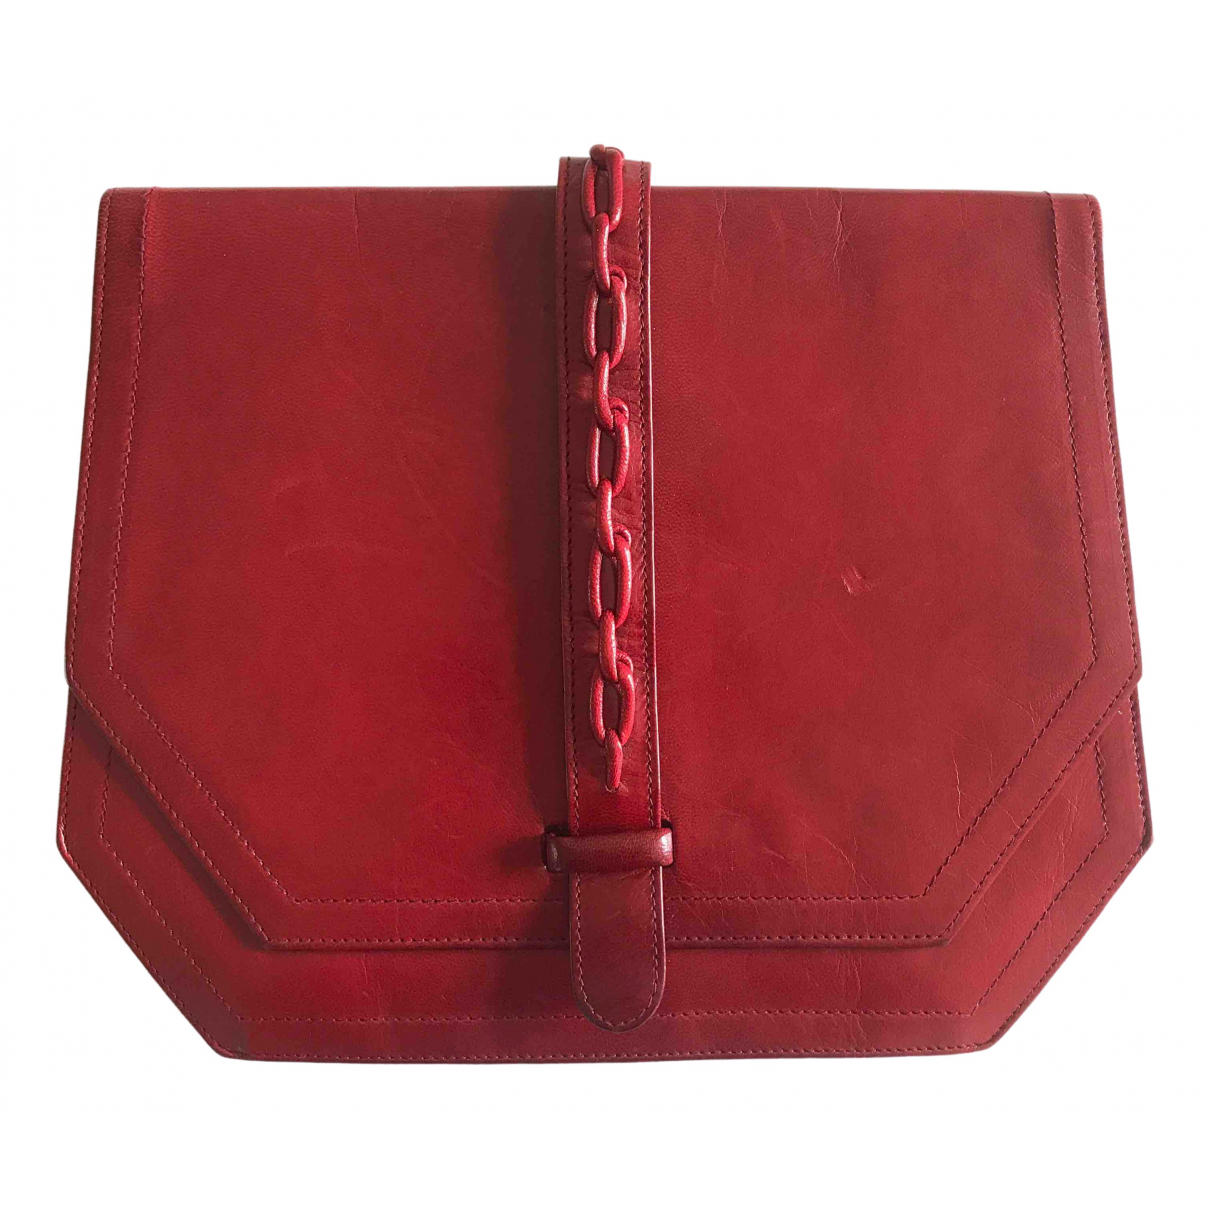 Dior \N Red Leather Clutch bag for Women \N